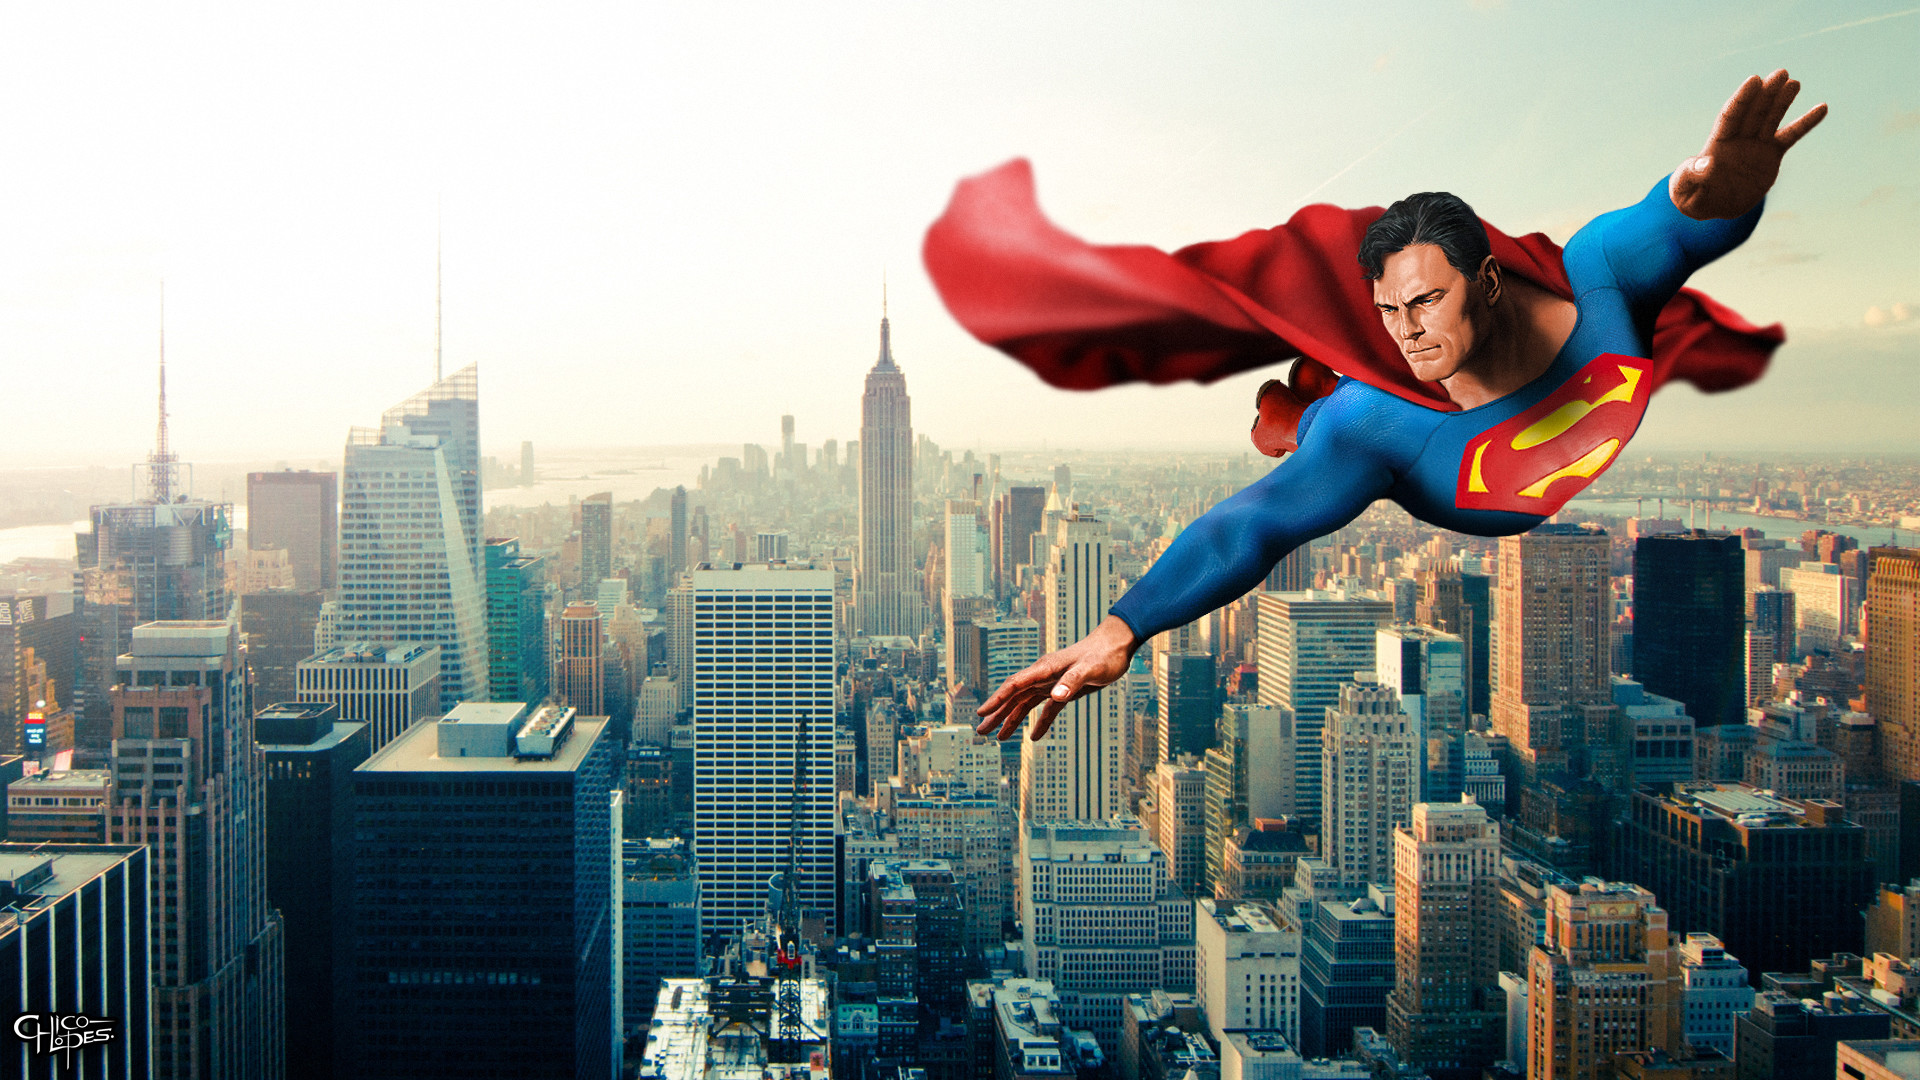 superman hd photos, superman images hd